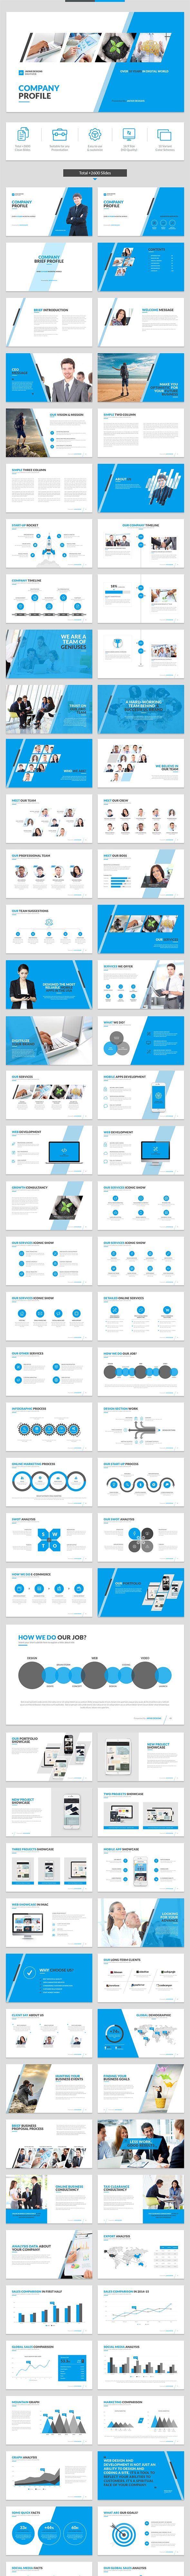 Company Profile Keynote Template - Business Keynote Templates